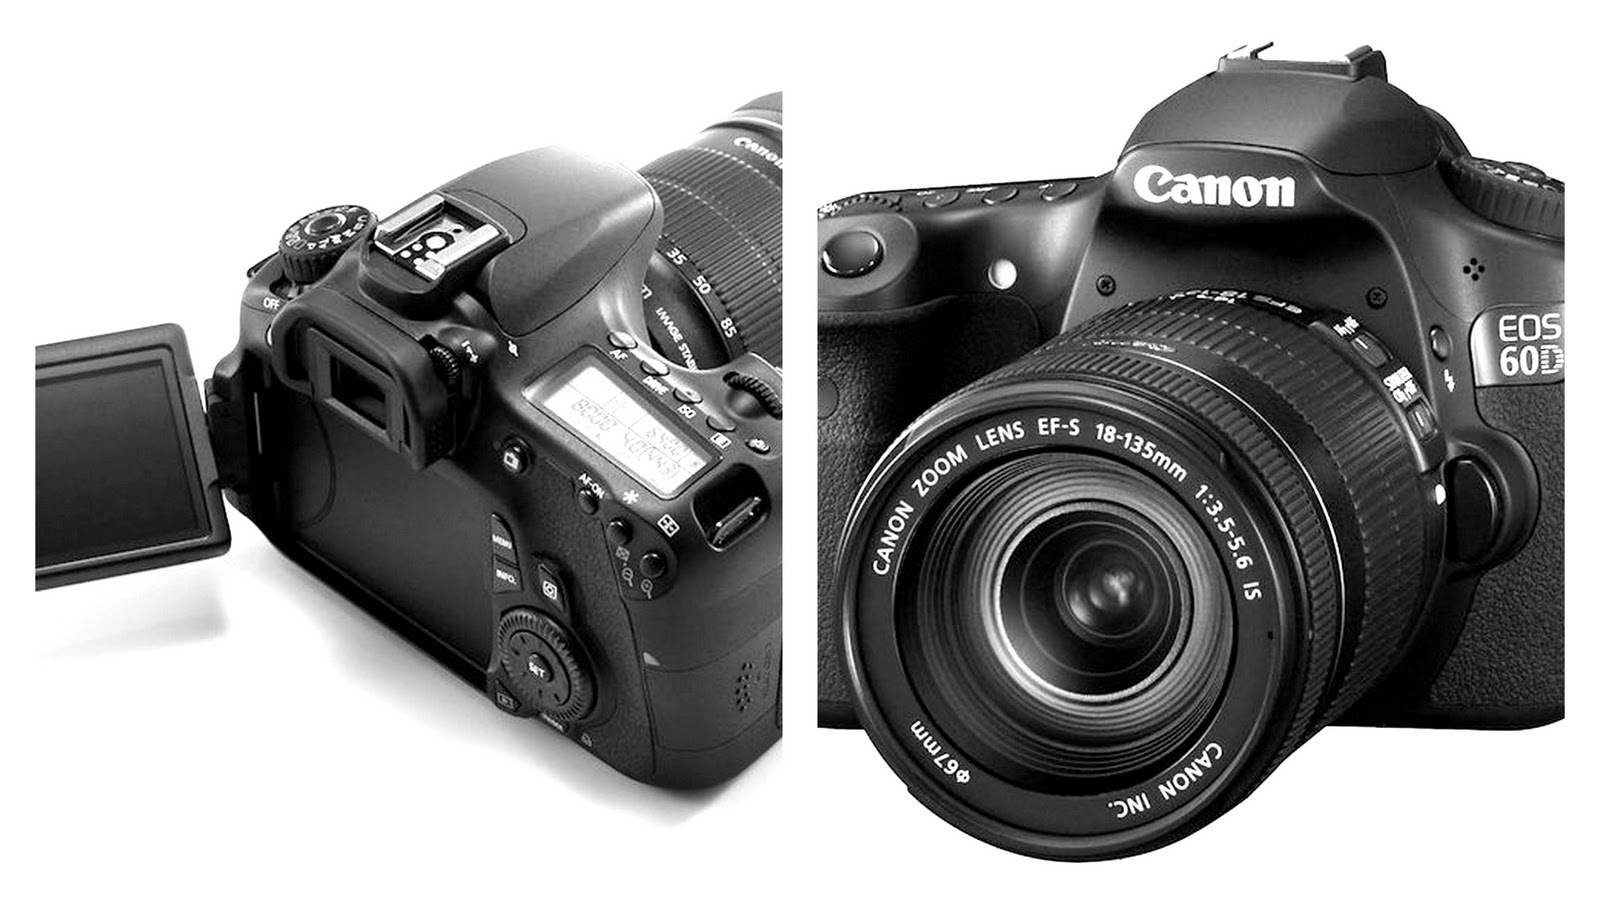 New toy in town - Canon EOS 60D.